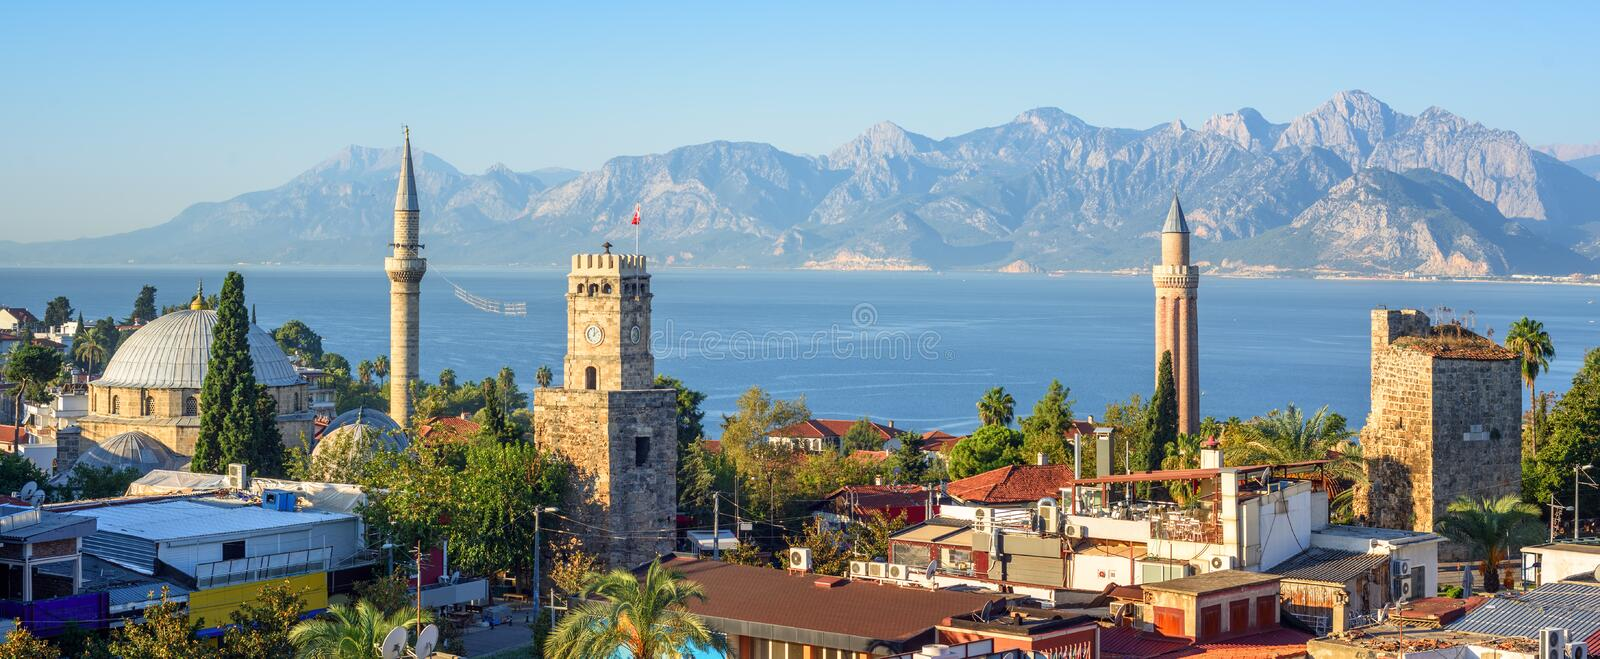 Panoramic view of Antalya Old Town, Turkey royalty free stock images